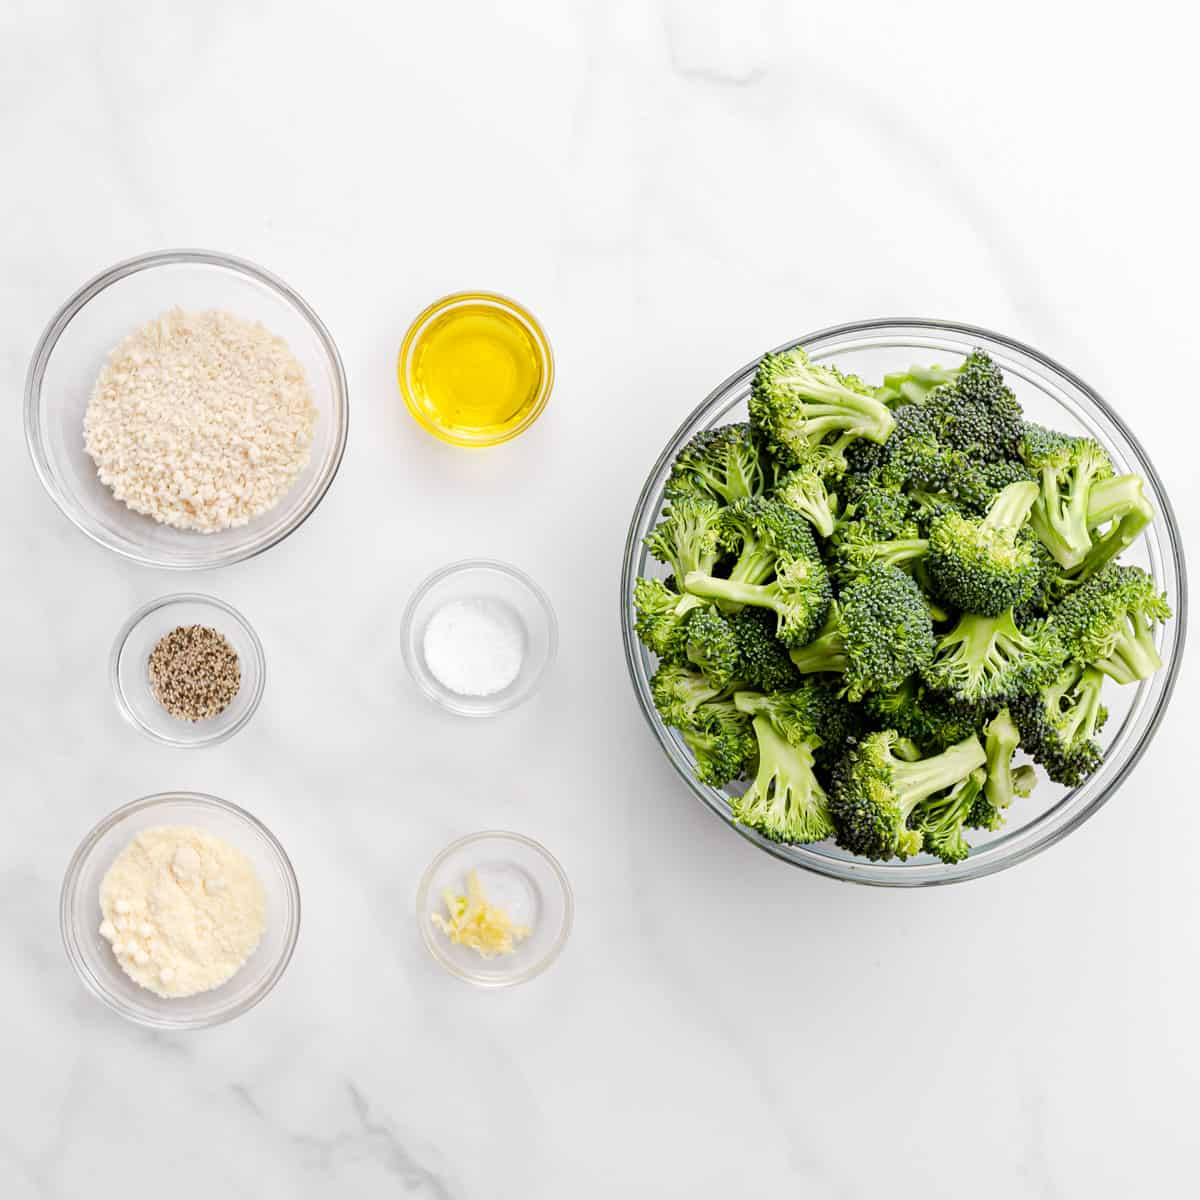 The Ingredients for Roasted Broccoli.